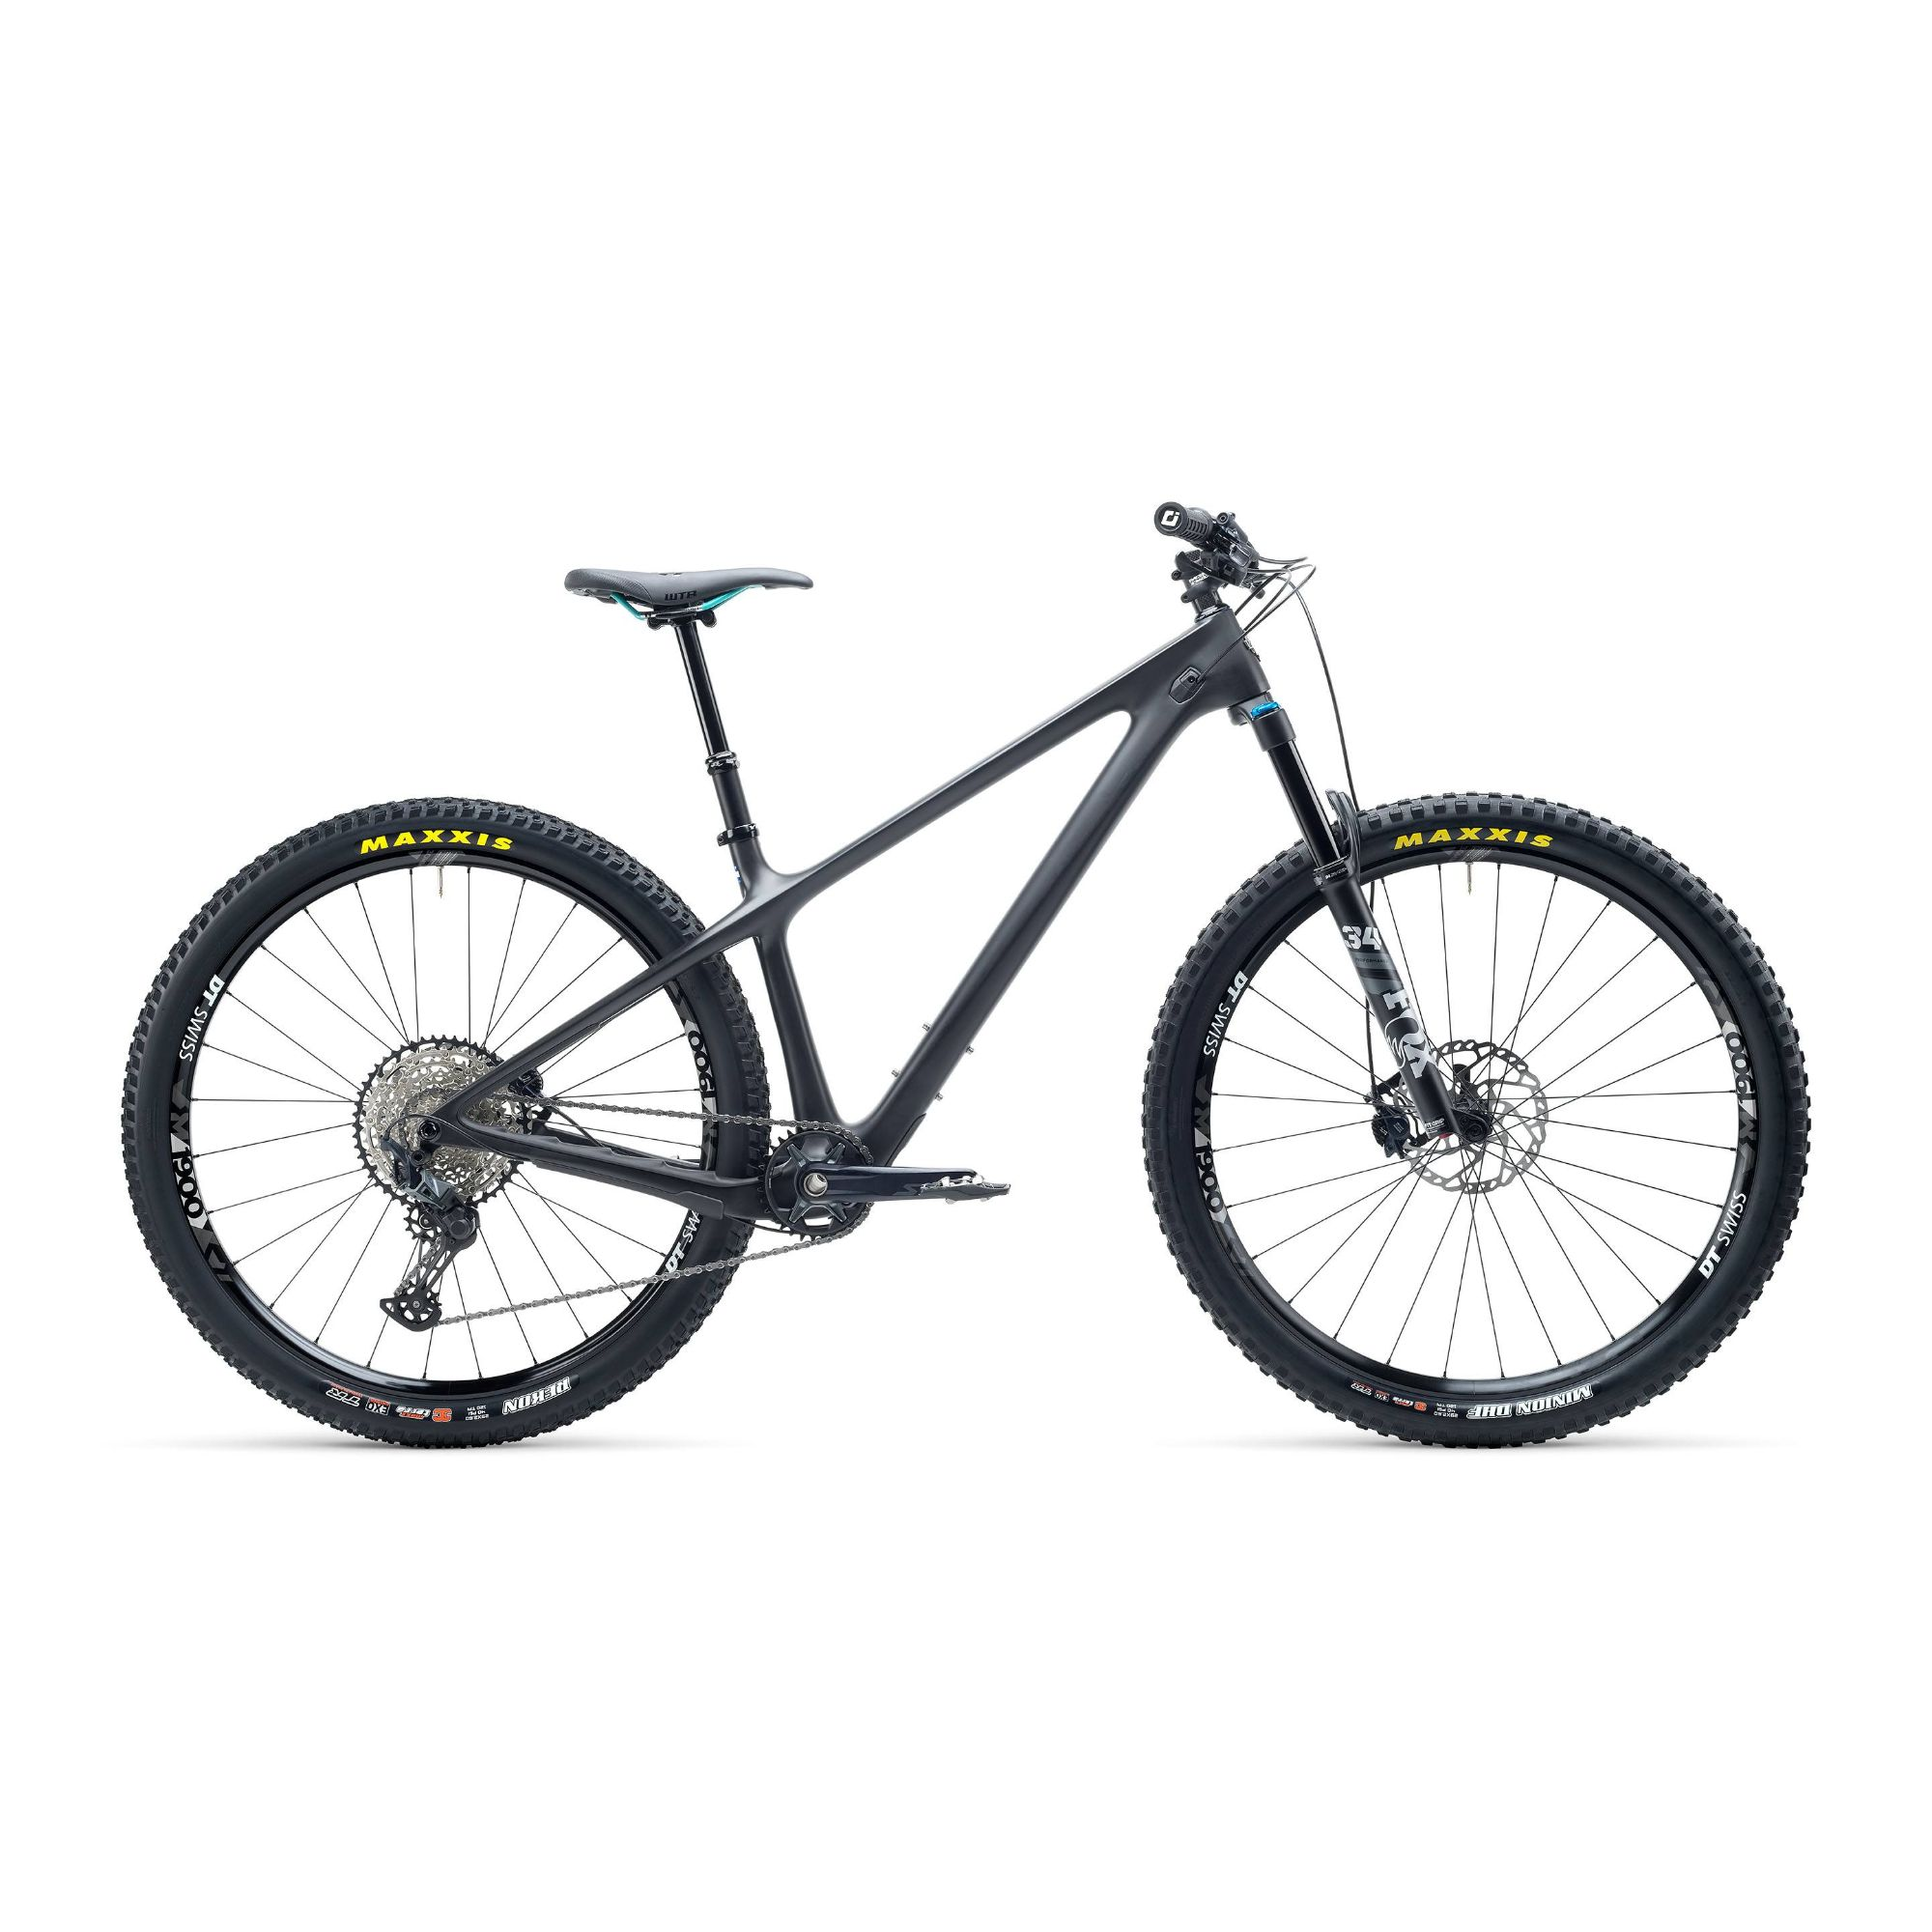 Yeti ARC C-Series C1 29er Shimano SLX Mountain Bike 2021 RAW/GREY